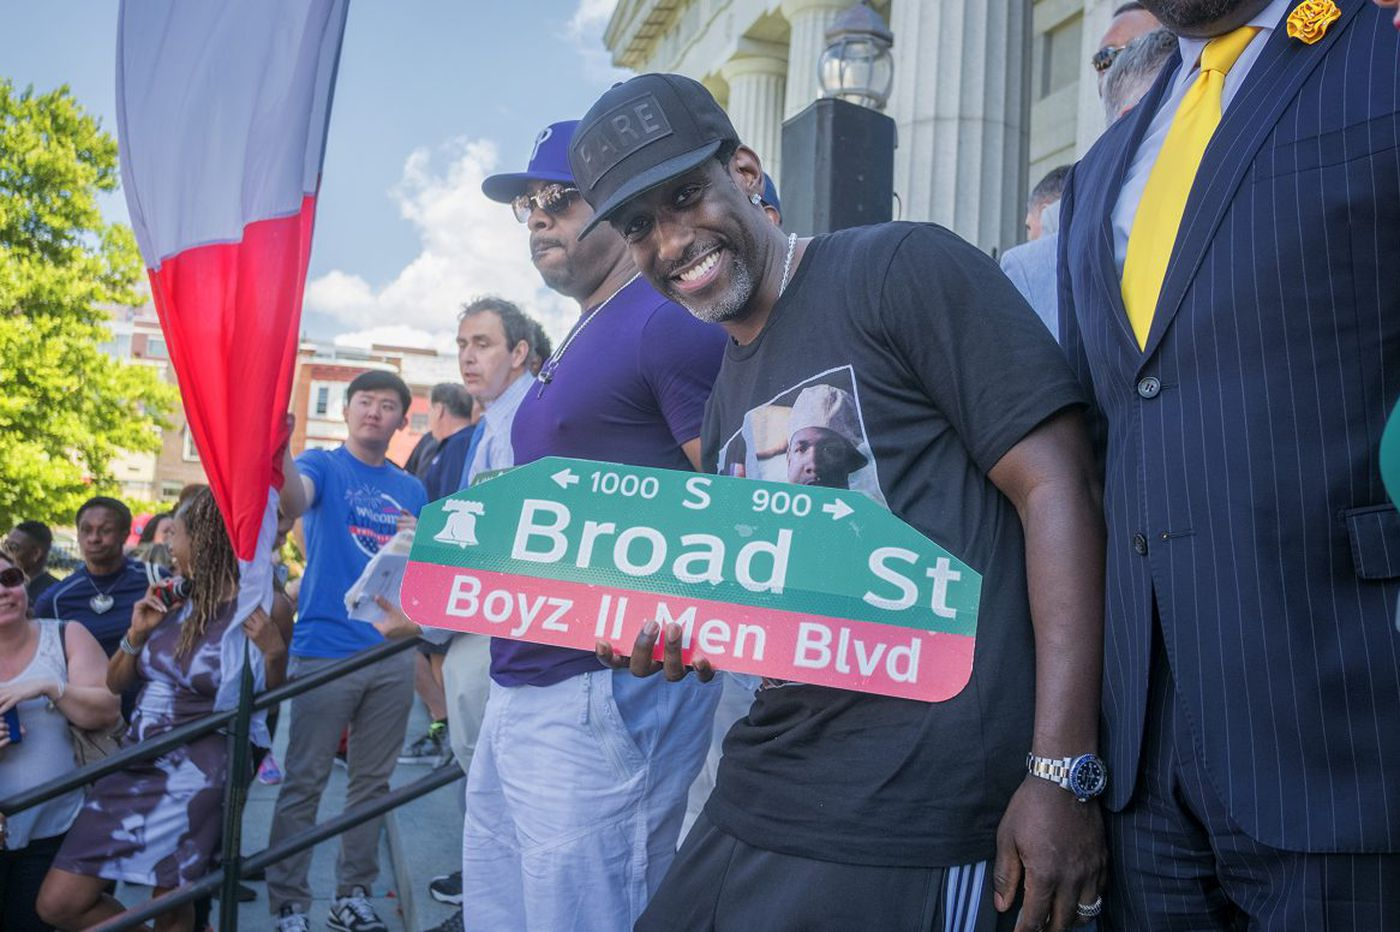 Another honor for Boyz II Men: Philly street with their name